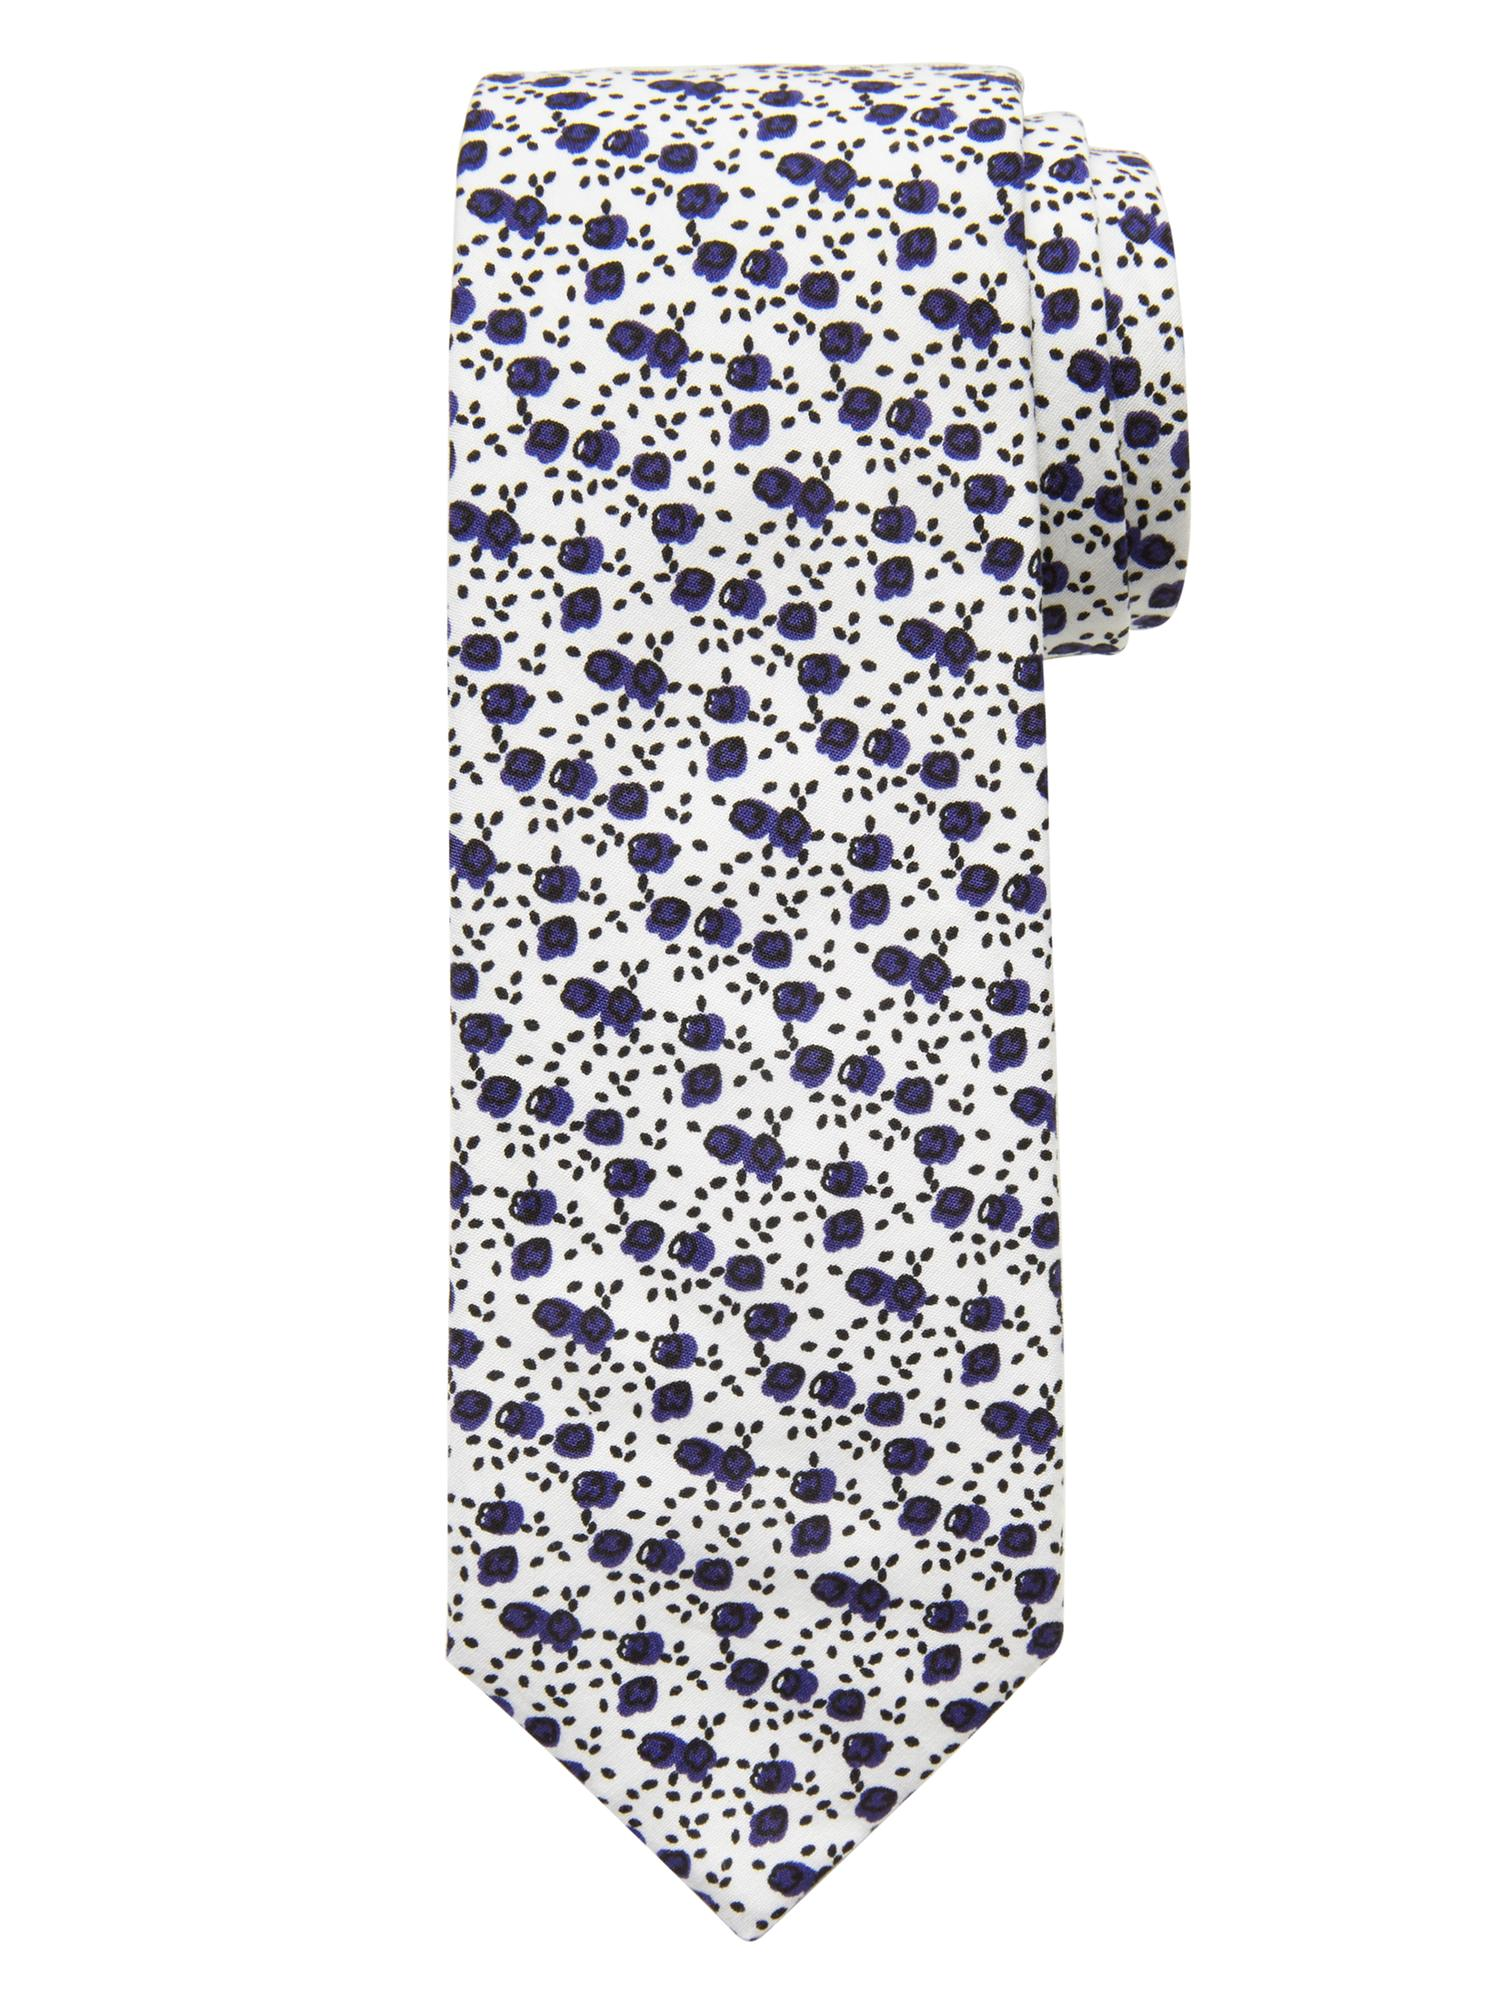 Floral Prints for Guys - Banana Republic Italian Cotton Micro-Floral Tie